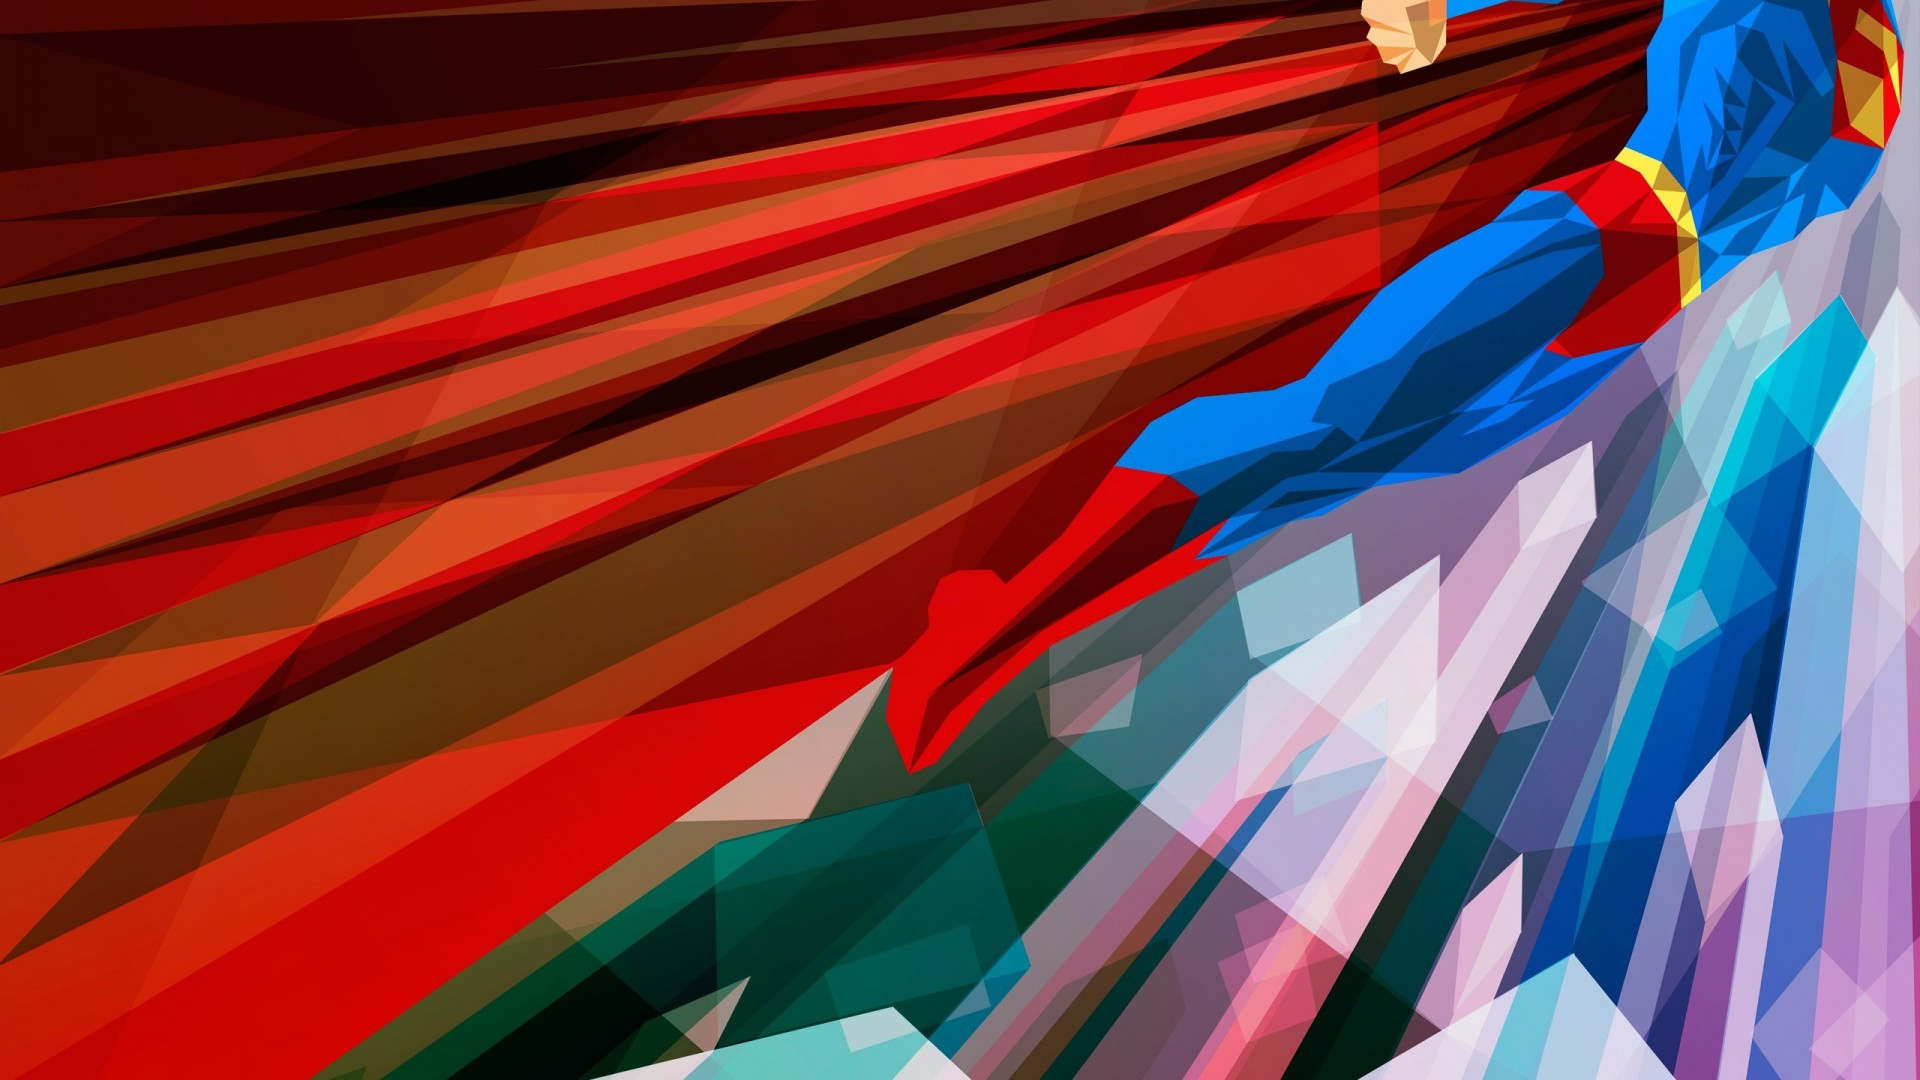 superman hd wallpapers 1080p - wallpapersafari